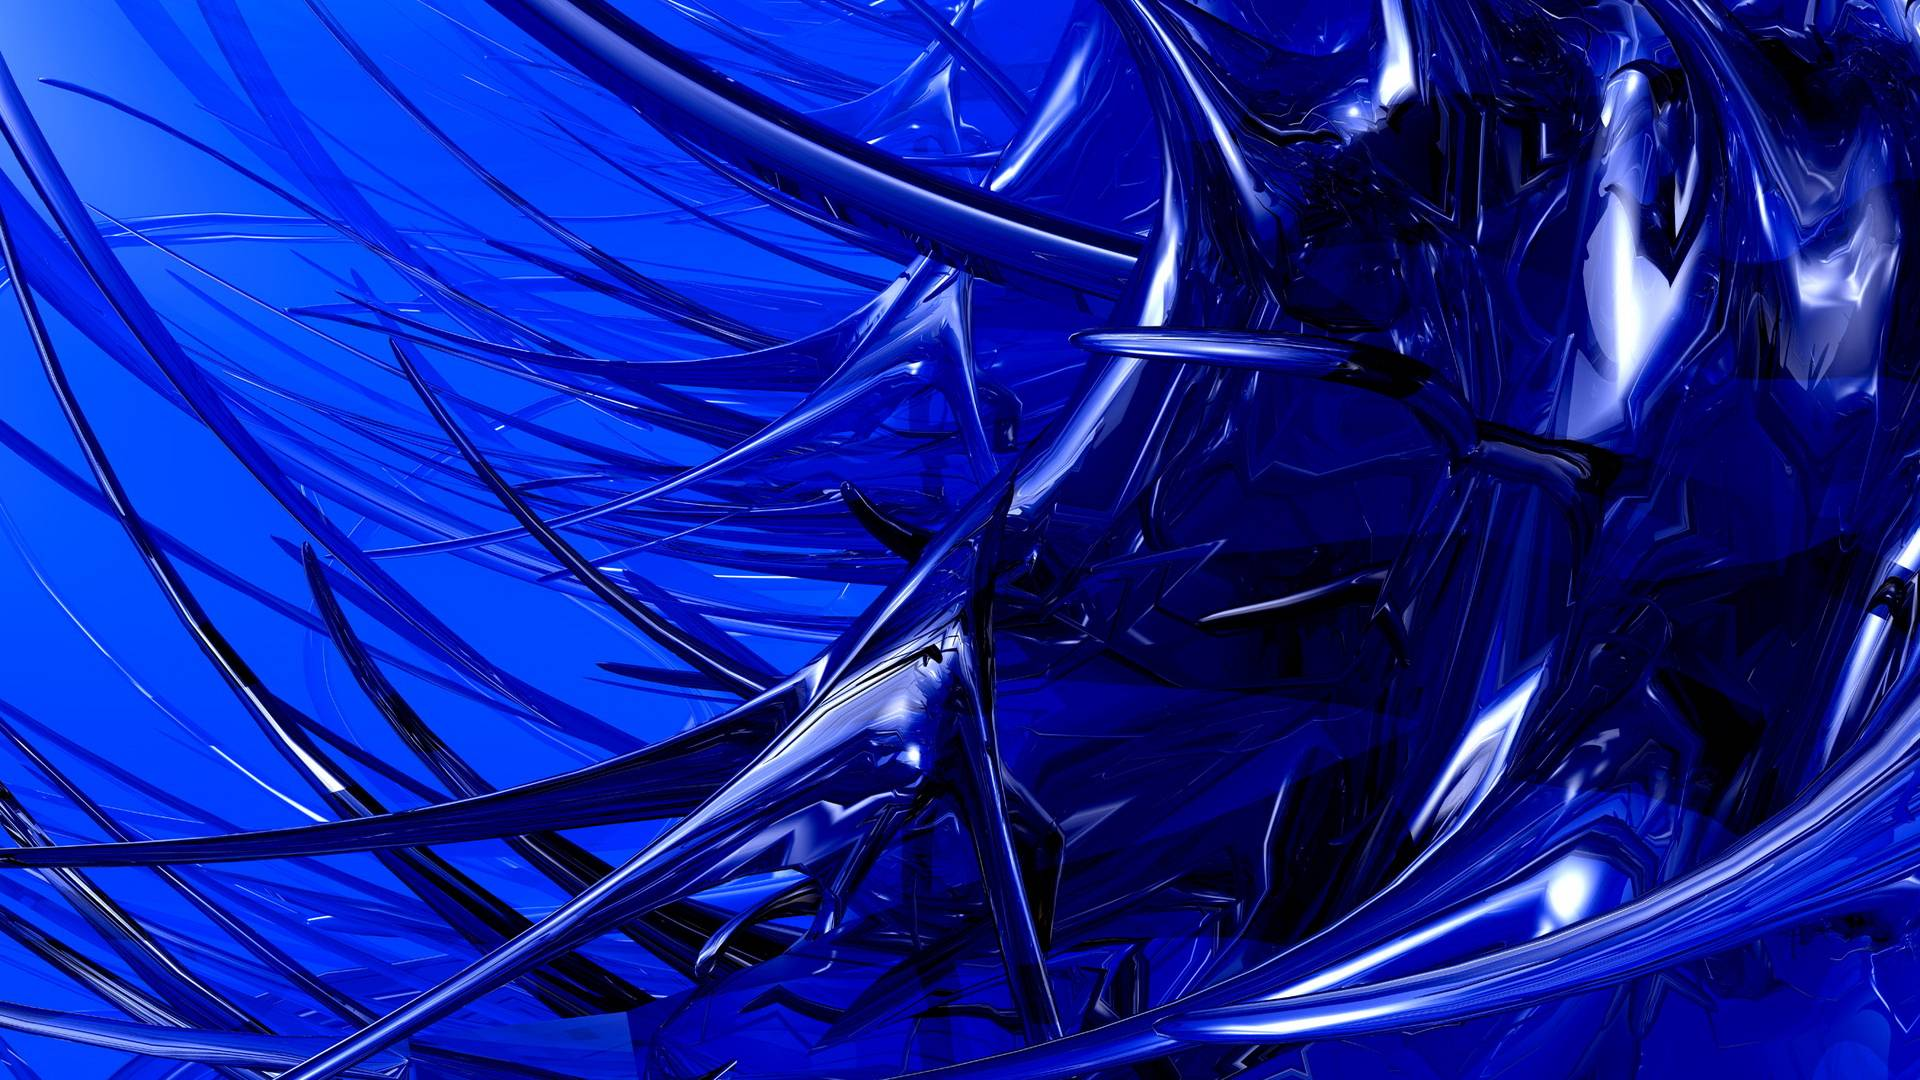 Dark Blue And Black Abstract Backgrounds - Wallpaper Cave